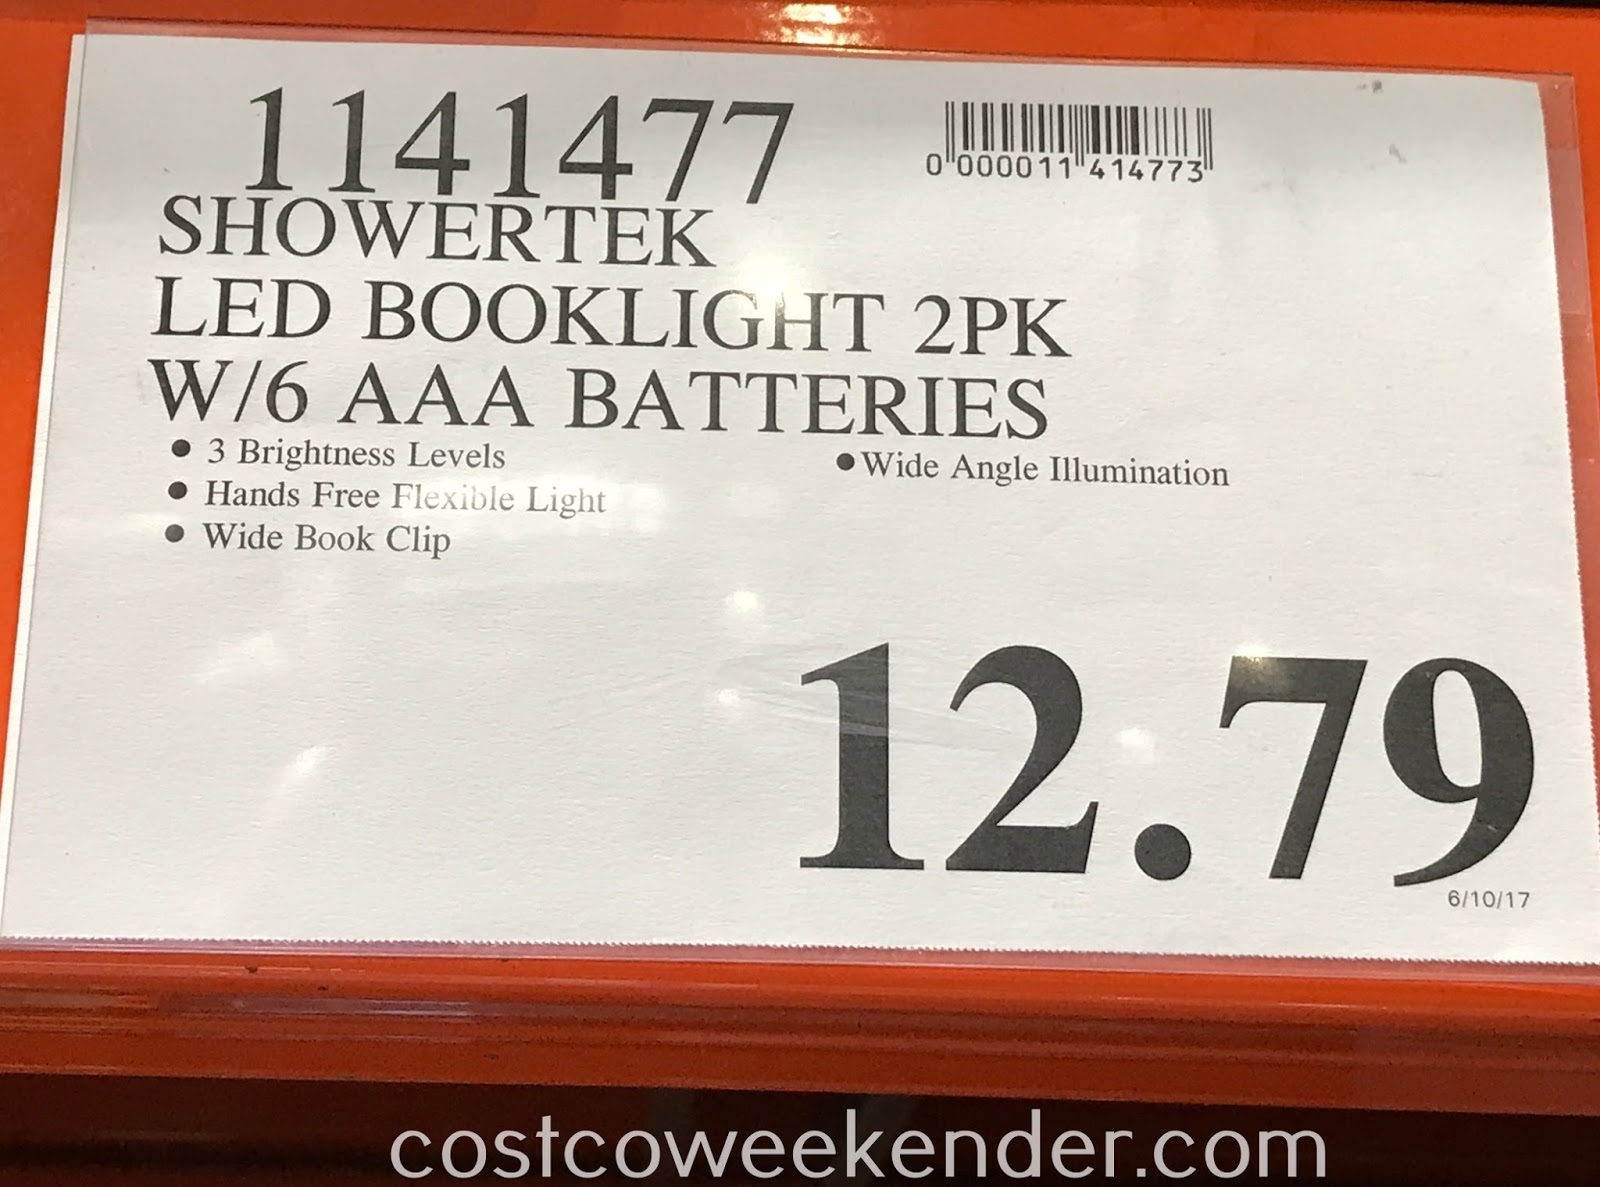 Deal for a 2 pack of MyLight Ultra Bright LED Book Lights at Costco